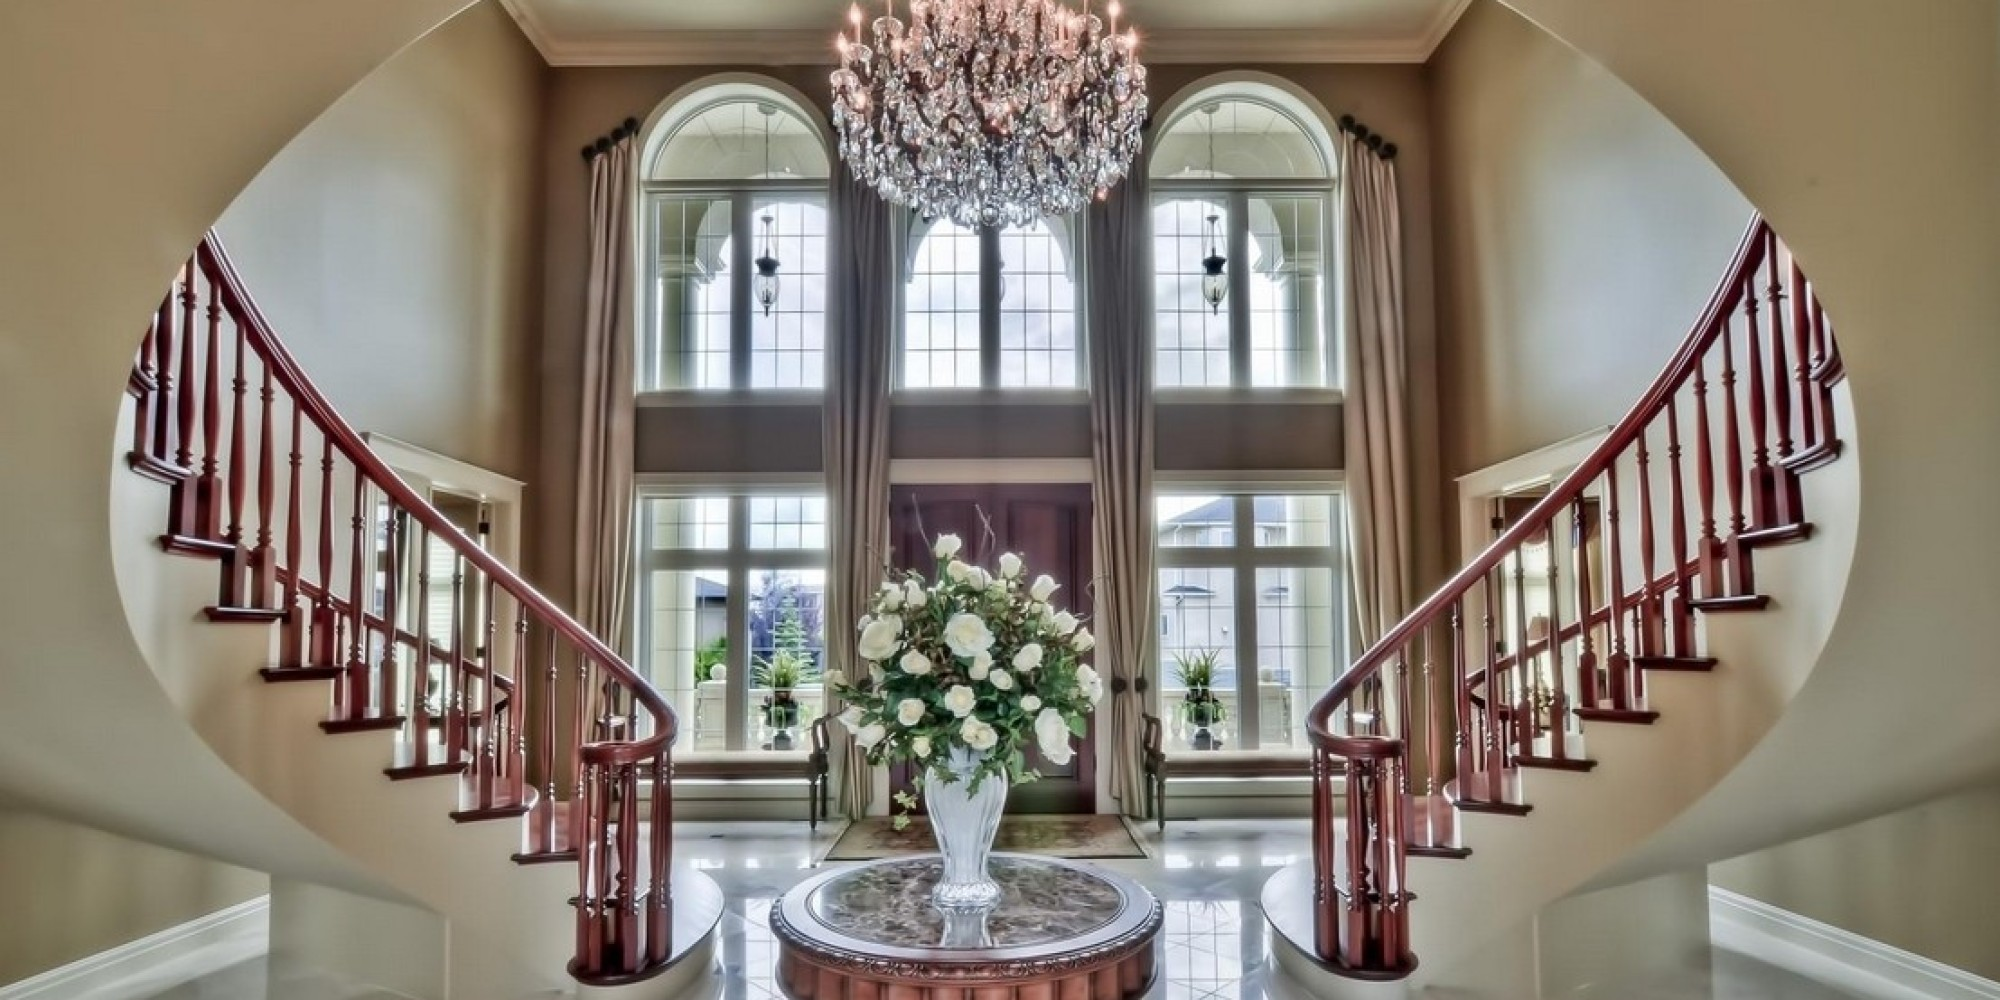 Most expensive houses for sale in canada feb 2014 edition for Most luxurious house